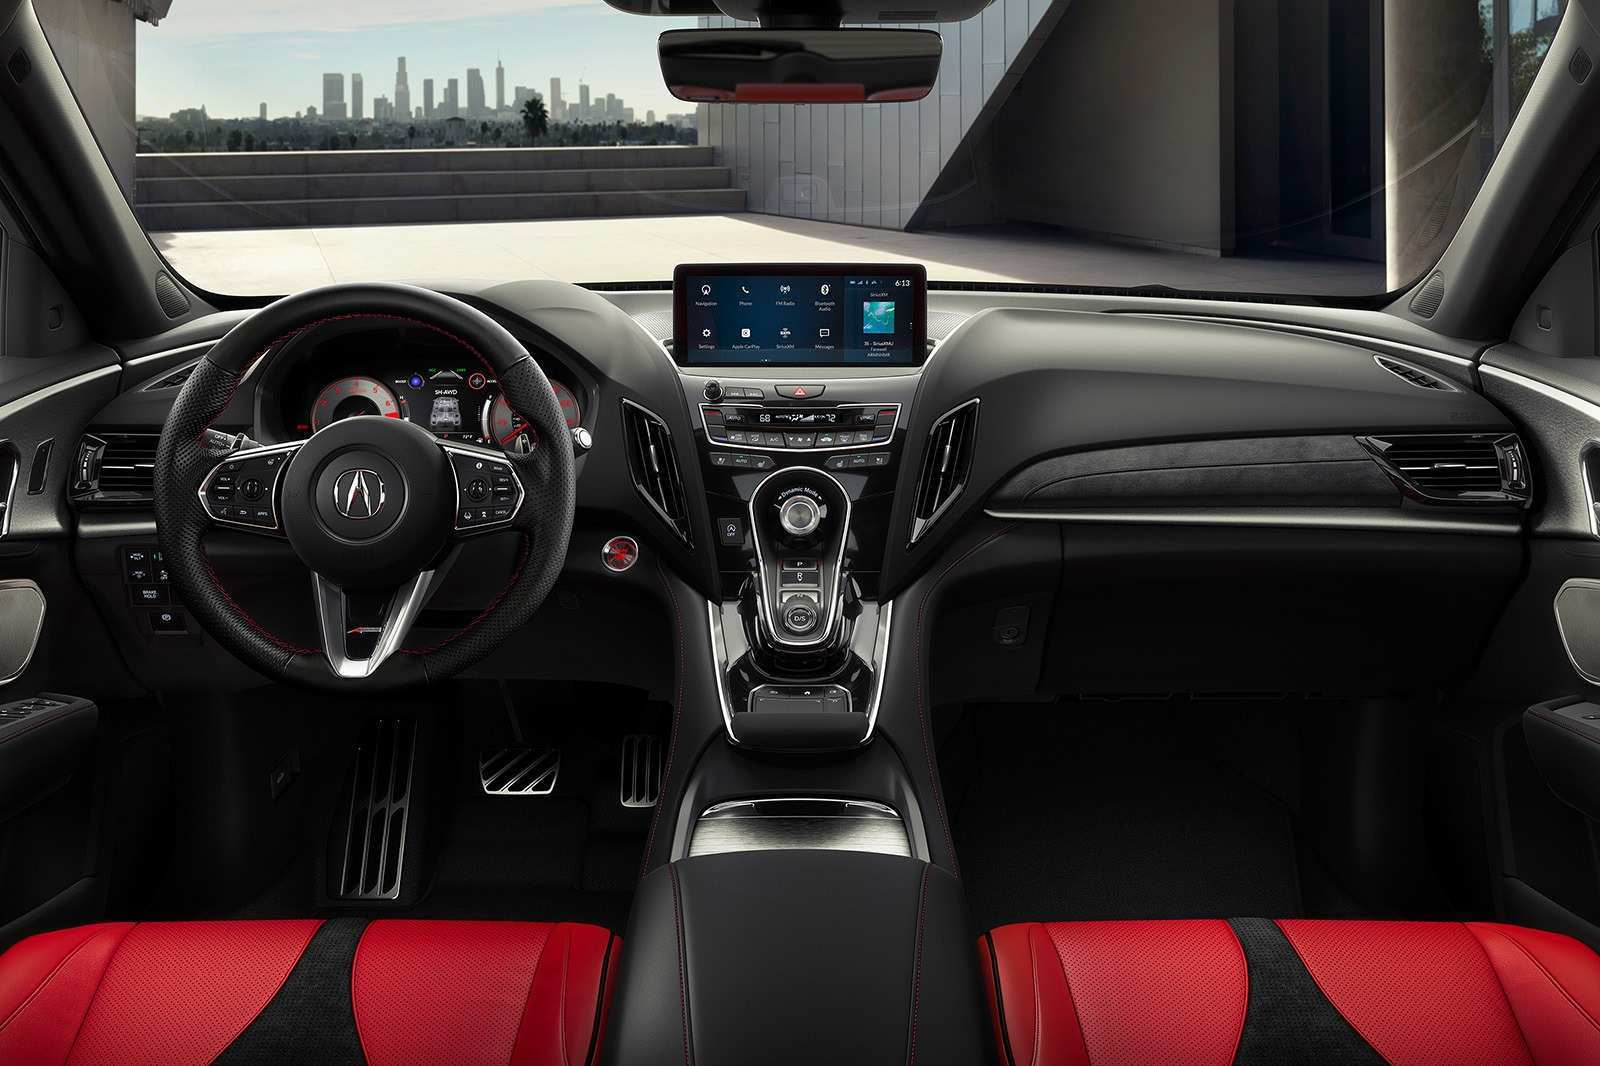 67 New New Acura Rdx 2019 Option Packages Review And Specs First Drive with New Acura Rdx 2019 Option Packages Review And Specs